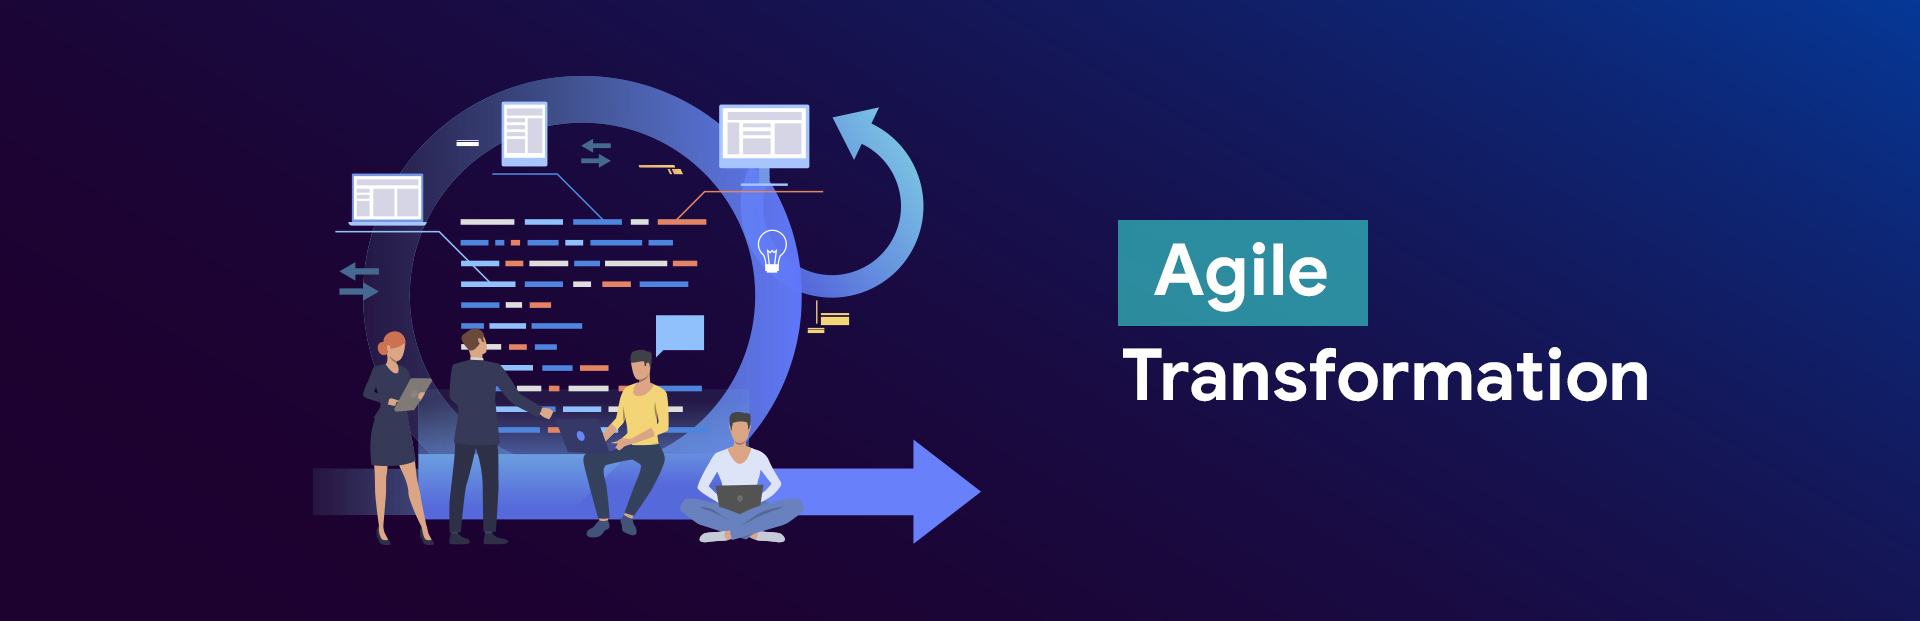 How Can Agile Transformation Help In Dealing With Complex Problems During Product Development?